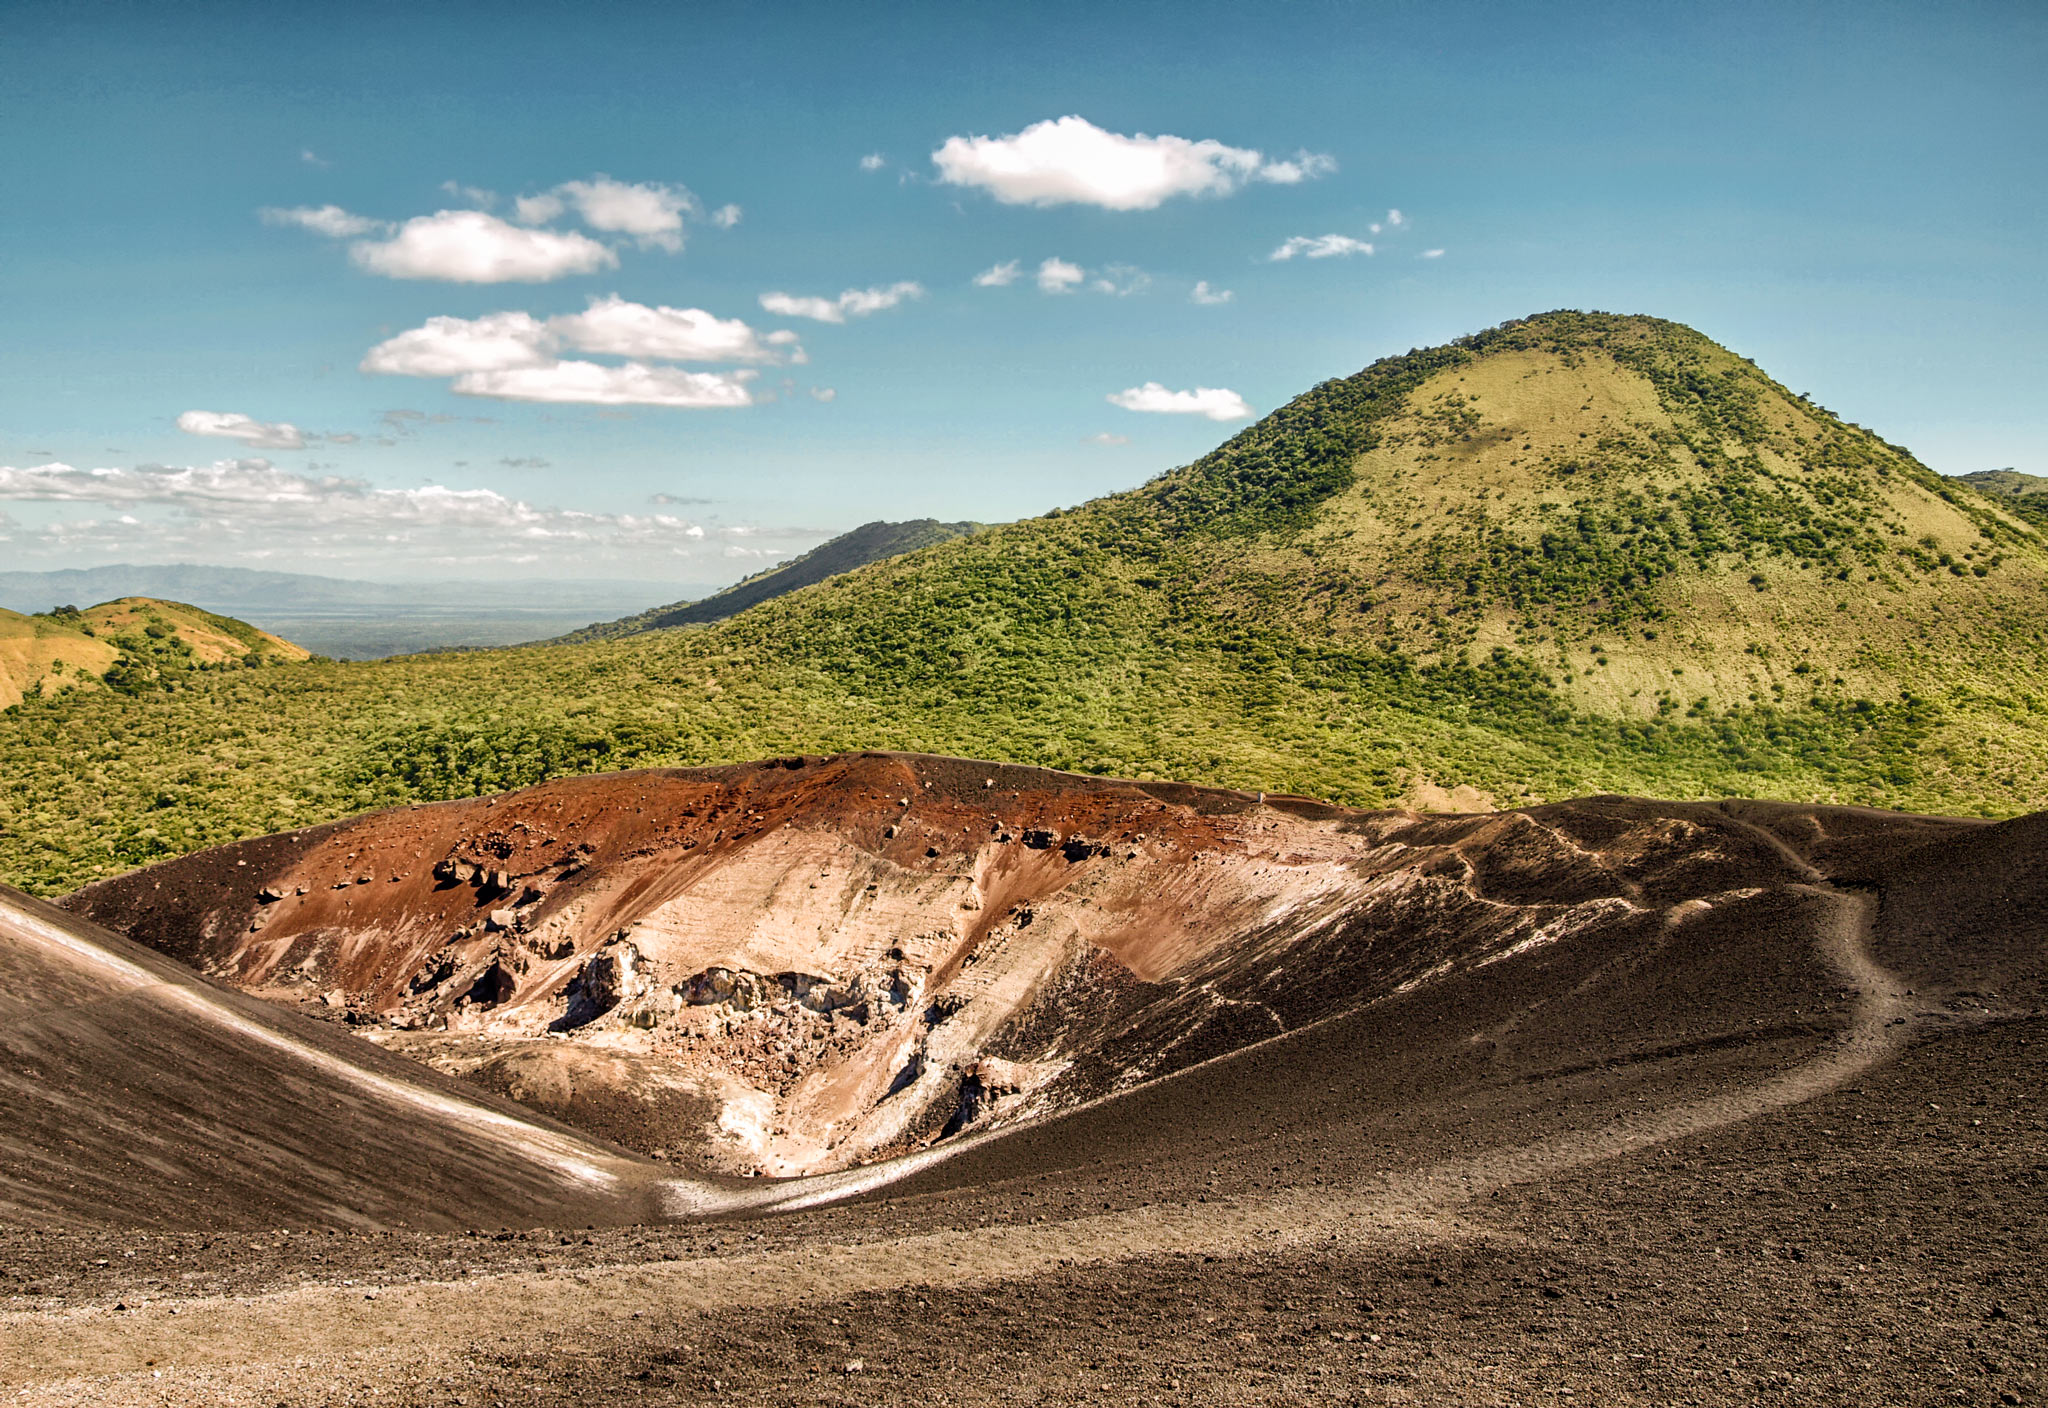 The contrast between the volcano and its green surroundings were like night and day.